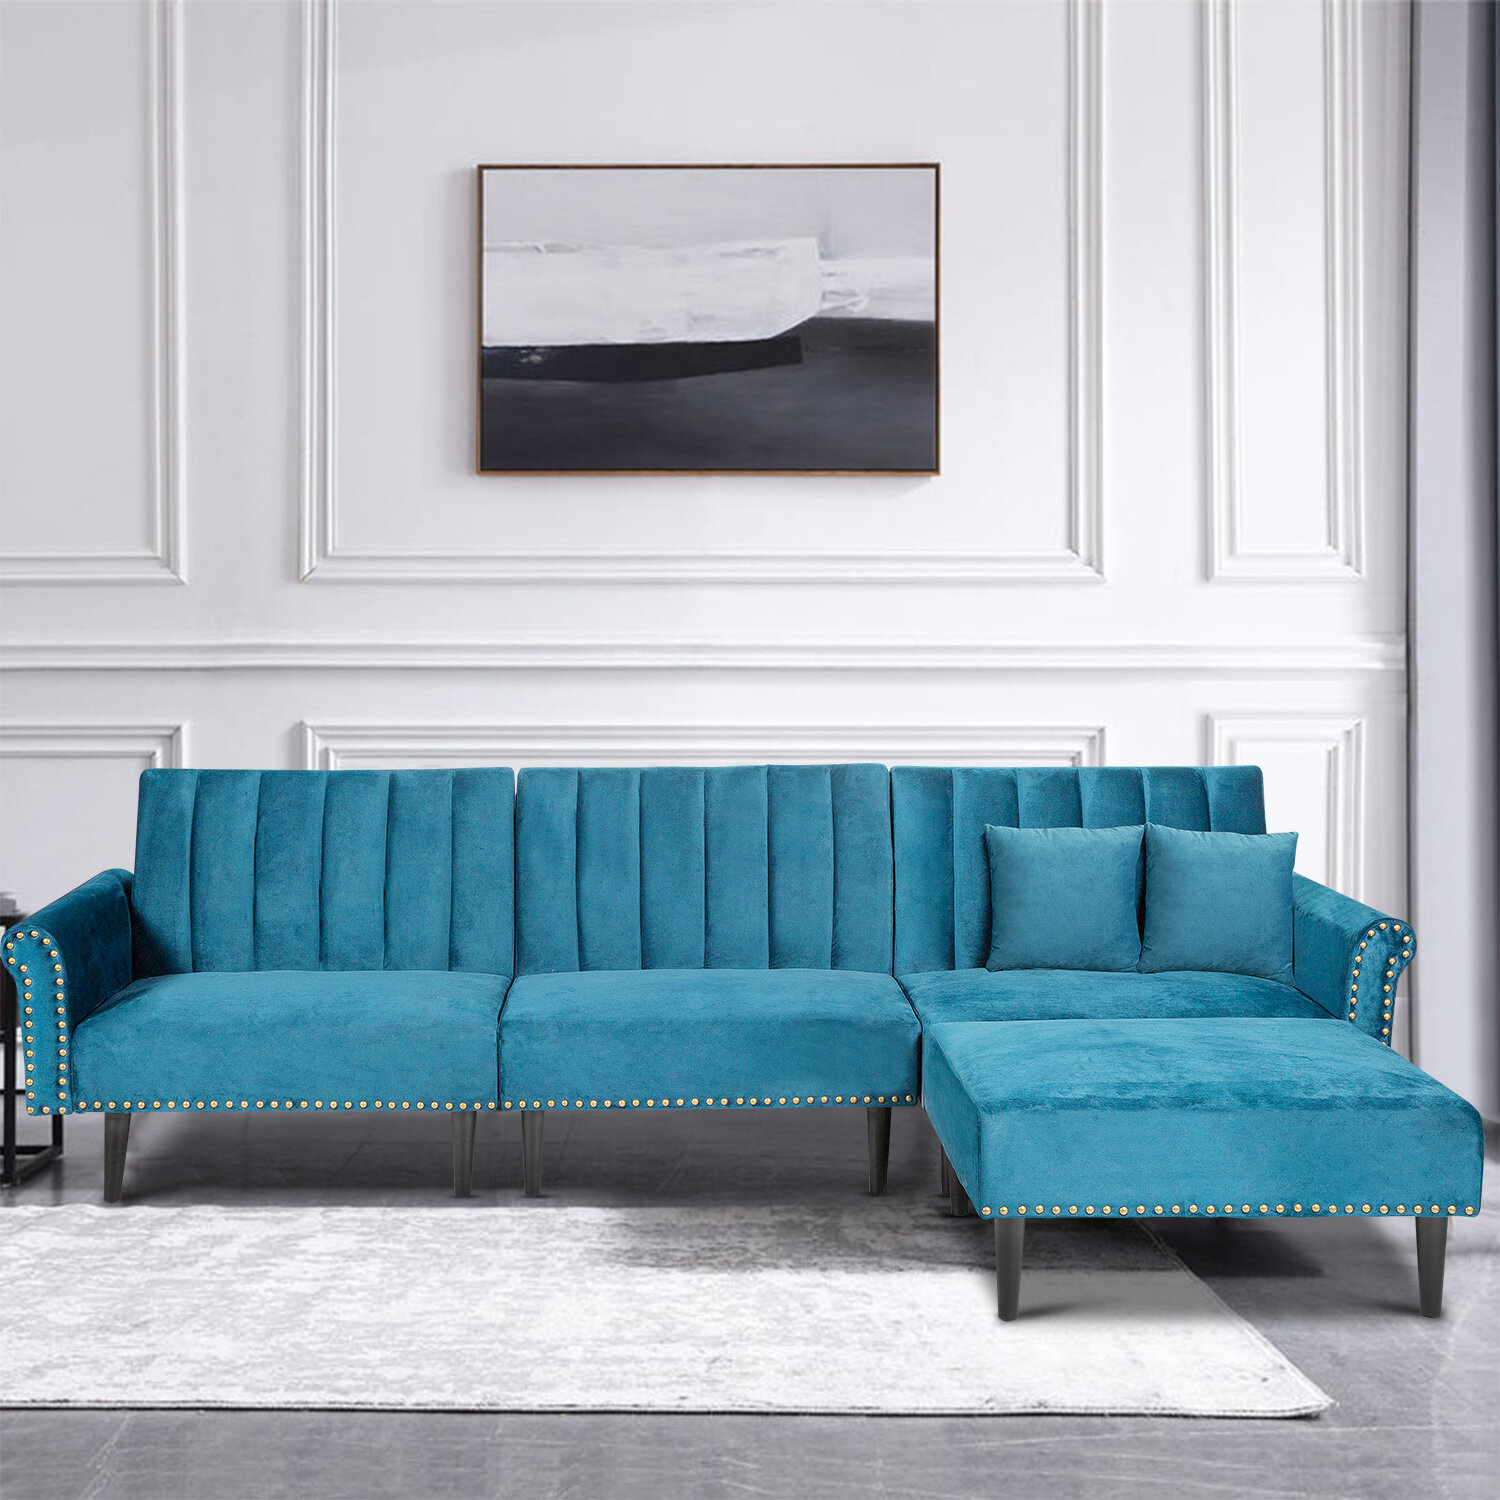 Mercer41 3 Person Sofa Sectional Sofa Couch For Living Room L Shape Sofa Couch Convertible Sofas Sectional Modern Stripe Velvet Futon Sofa Sleeper With 2 Pillows For Apartment For Living Room Office Blue